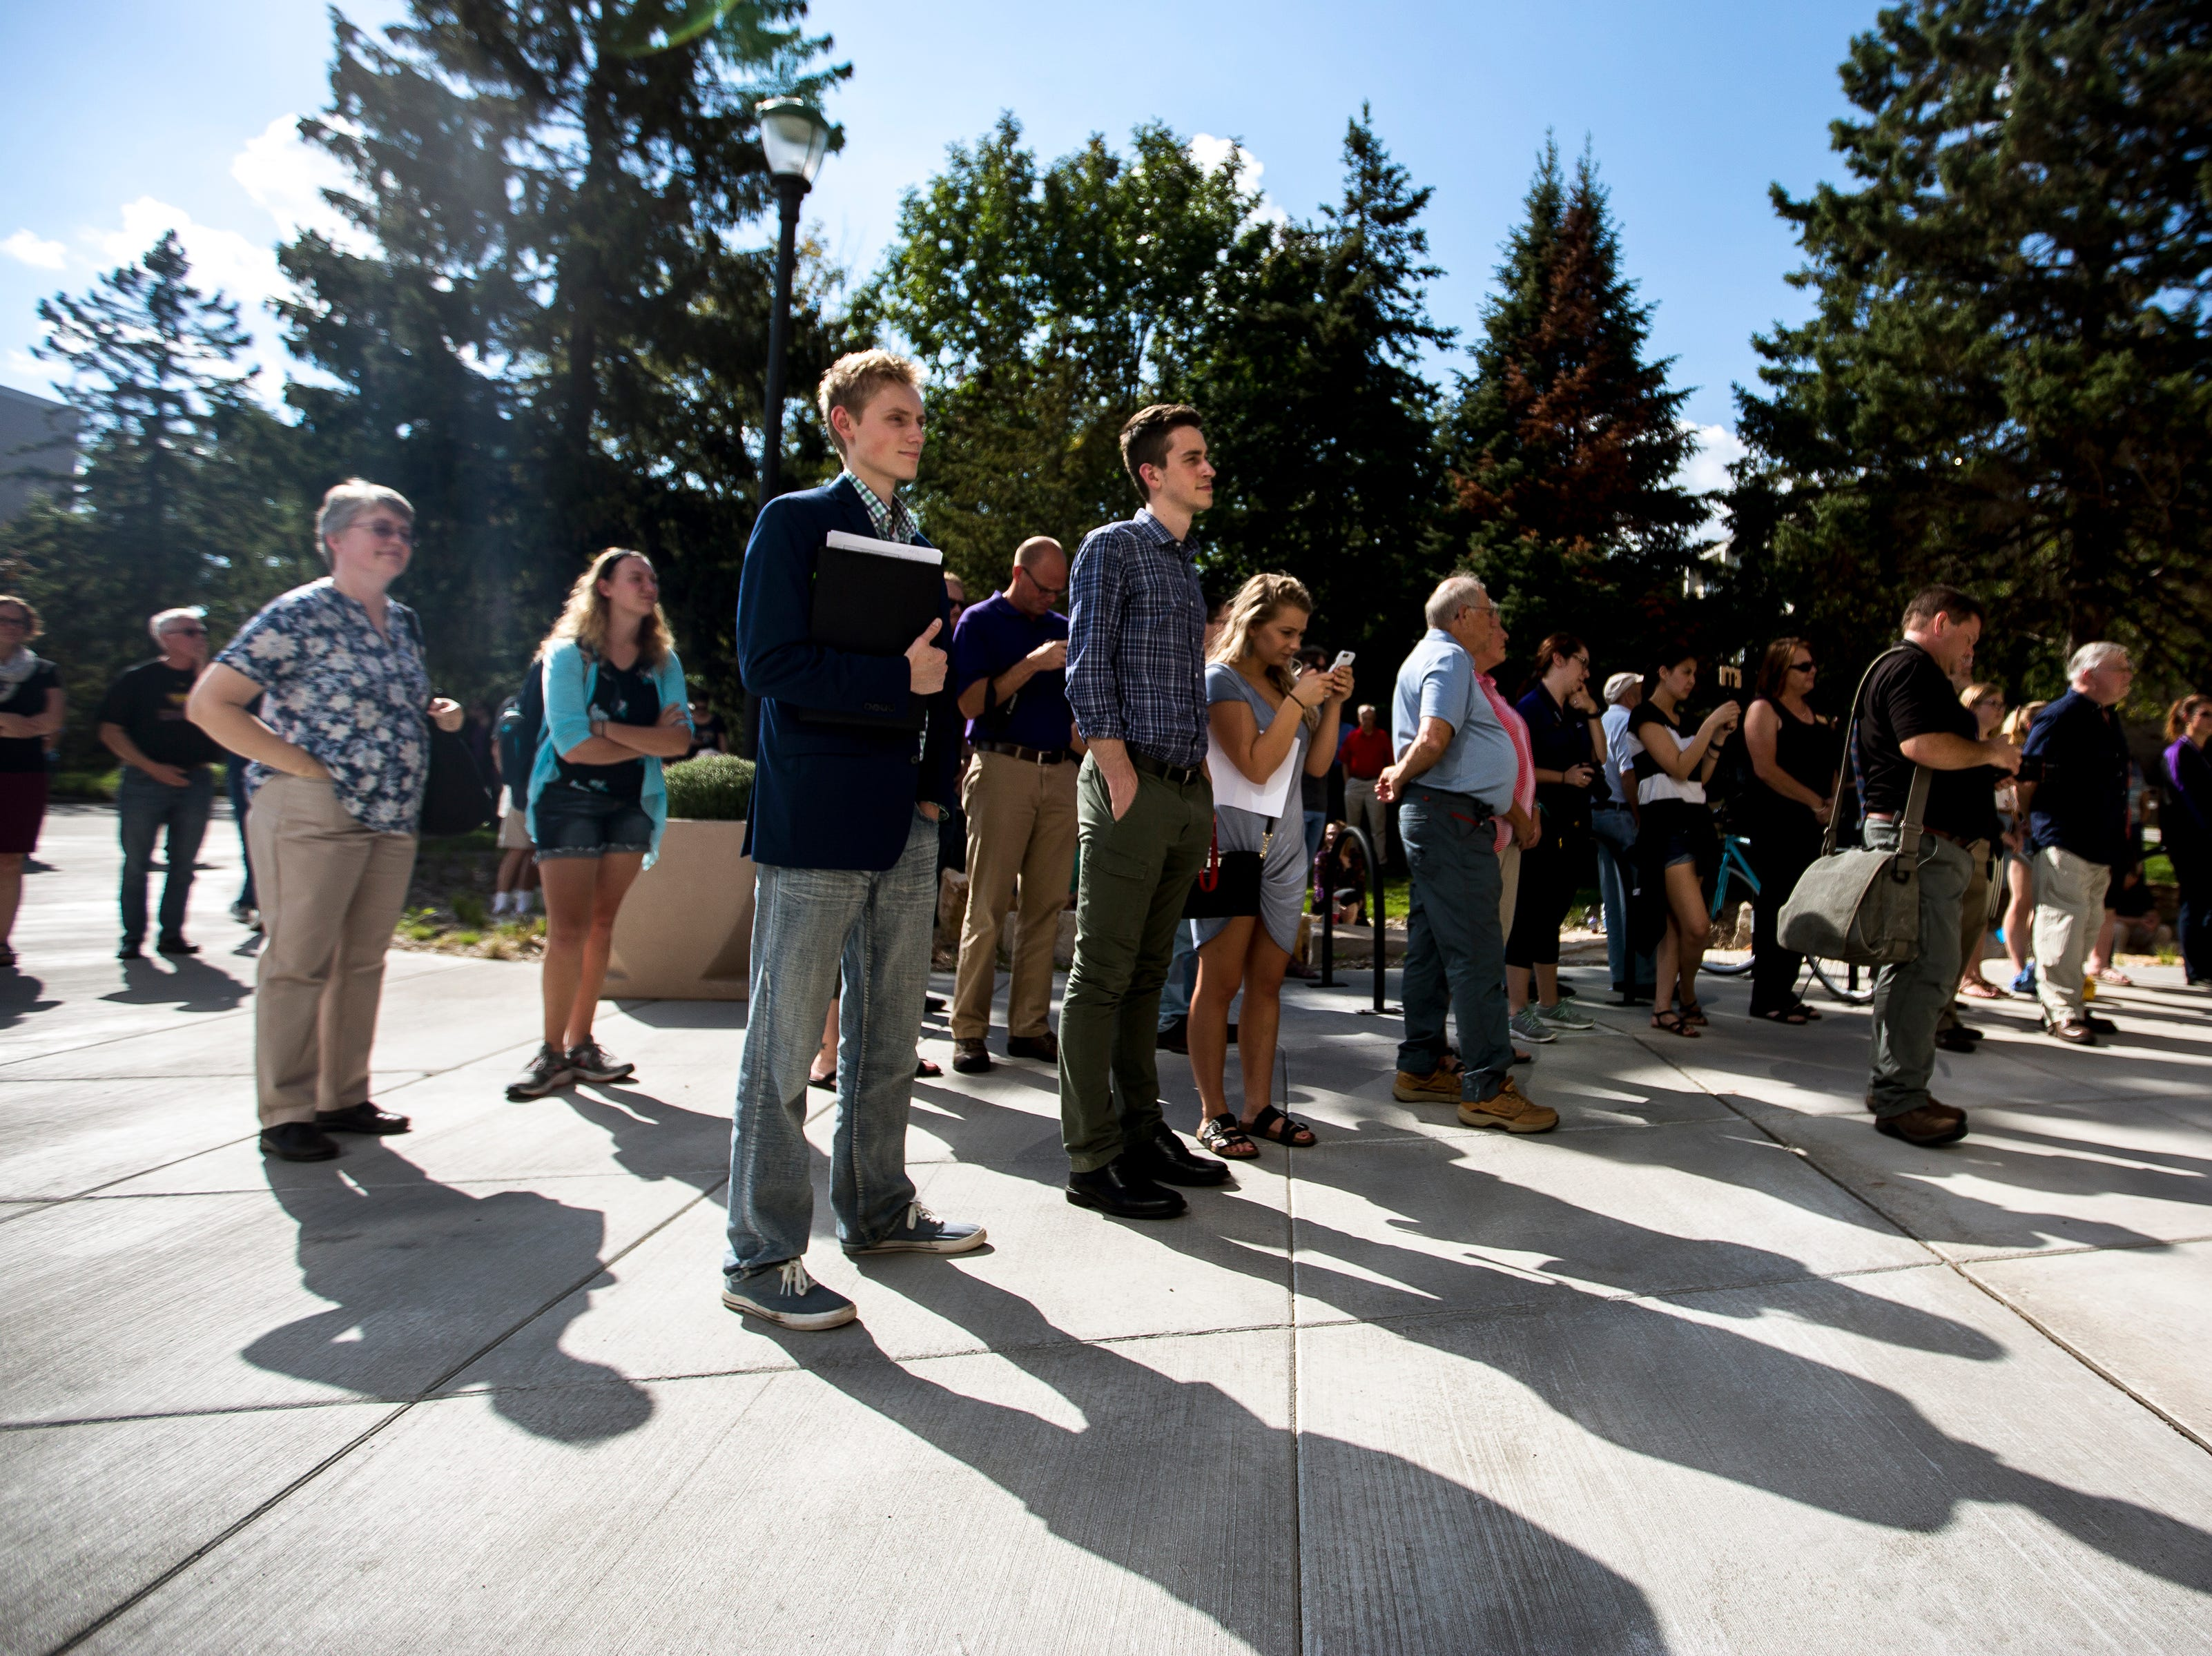 People listen to speakers during the opening ceremony for the Chemistry Biology Building at the University of Wisconsin-Stevens Point in Stevens Point, Wis., Sept. 14, 2018.